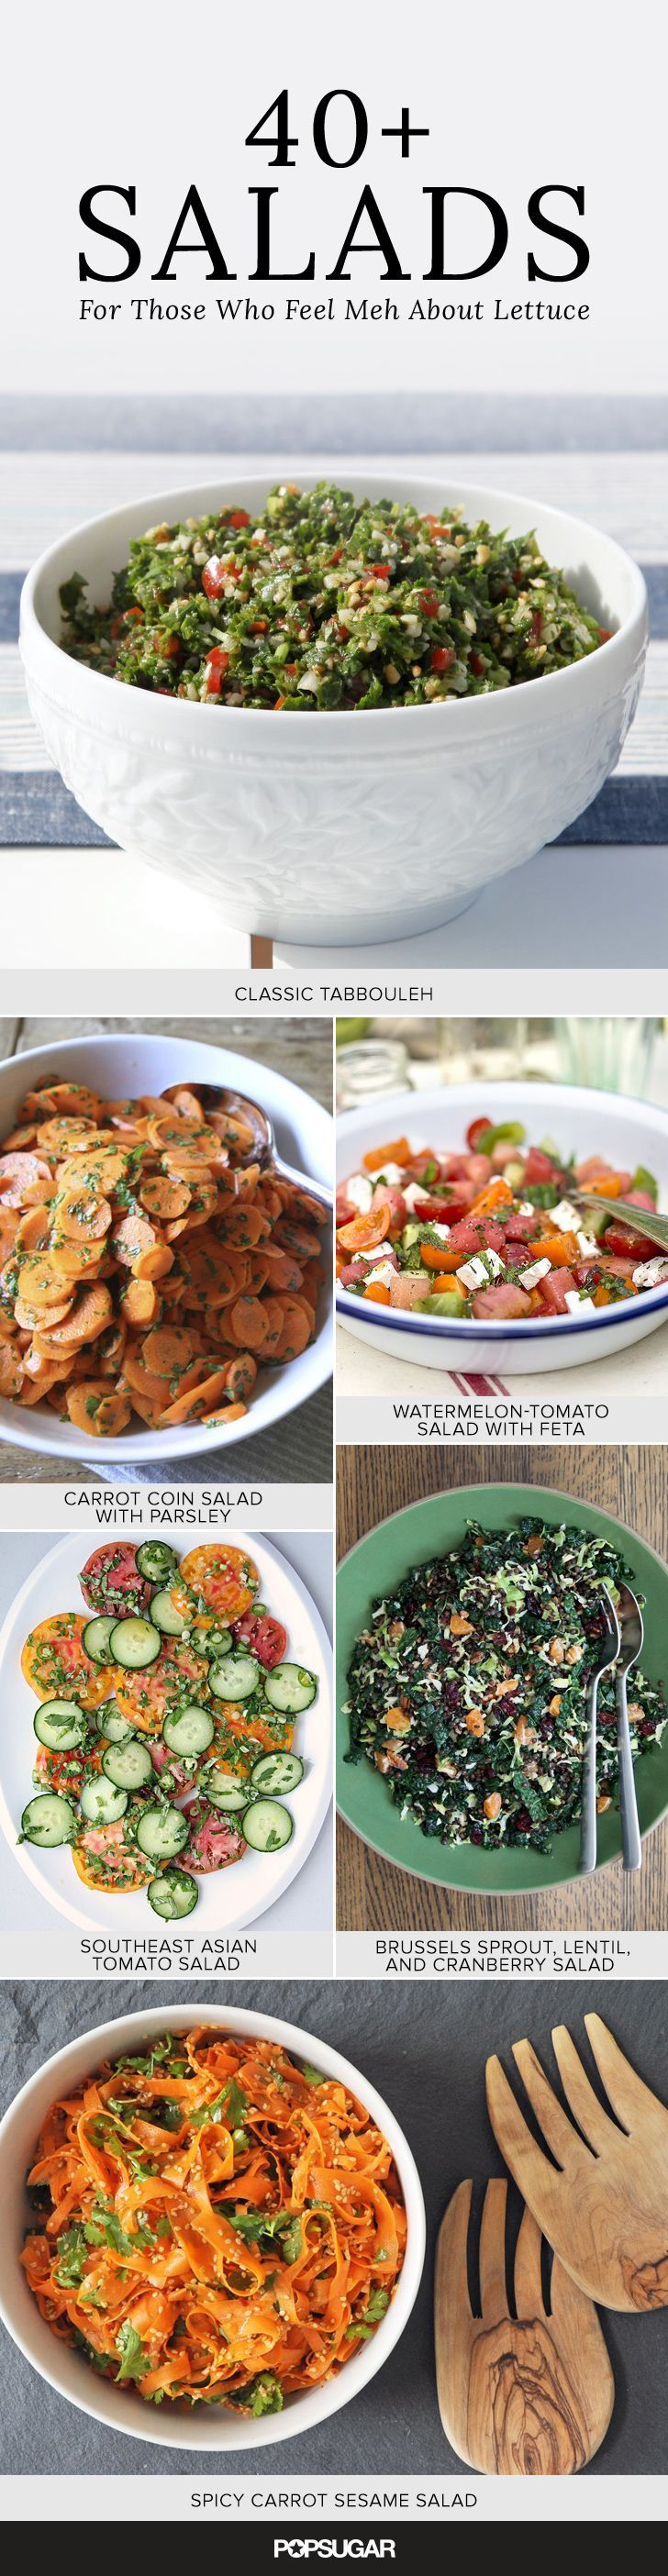 Salad recipes don't begin and end with a head of lettuce or a bag of mixed greens. These recipes from @POPSUGARFood are filling and delicious.